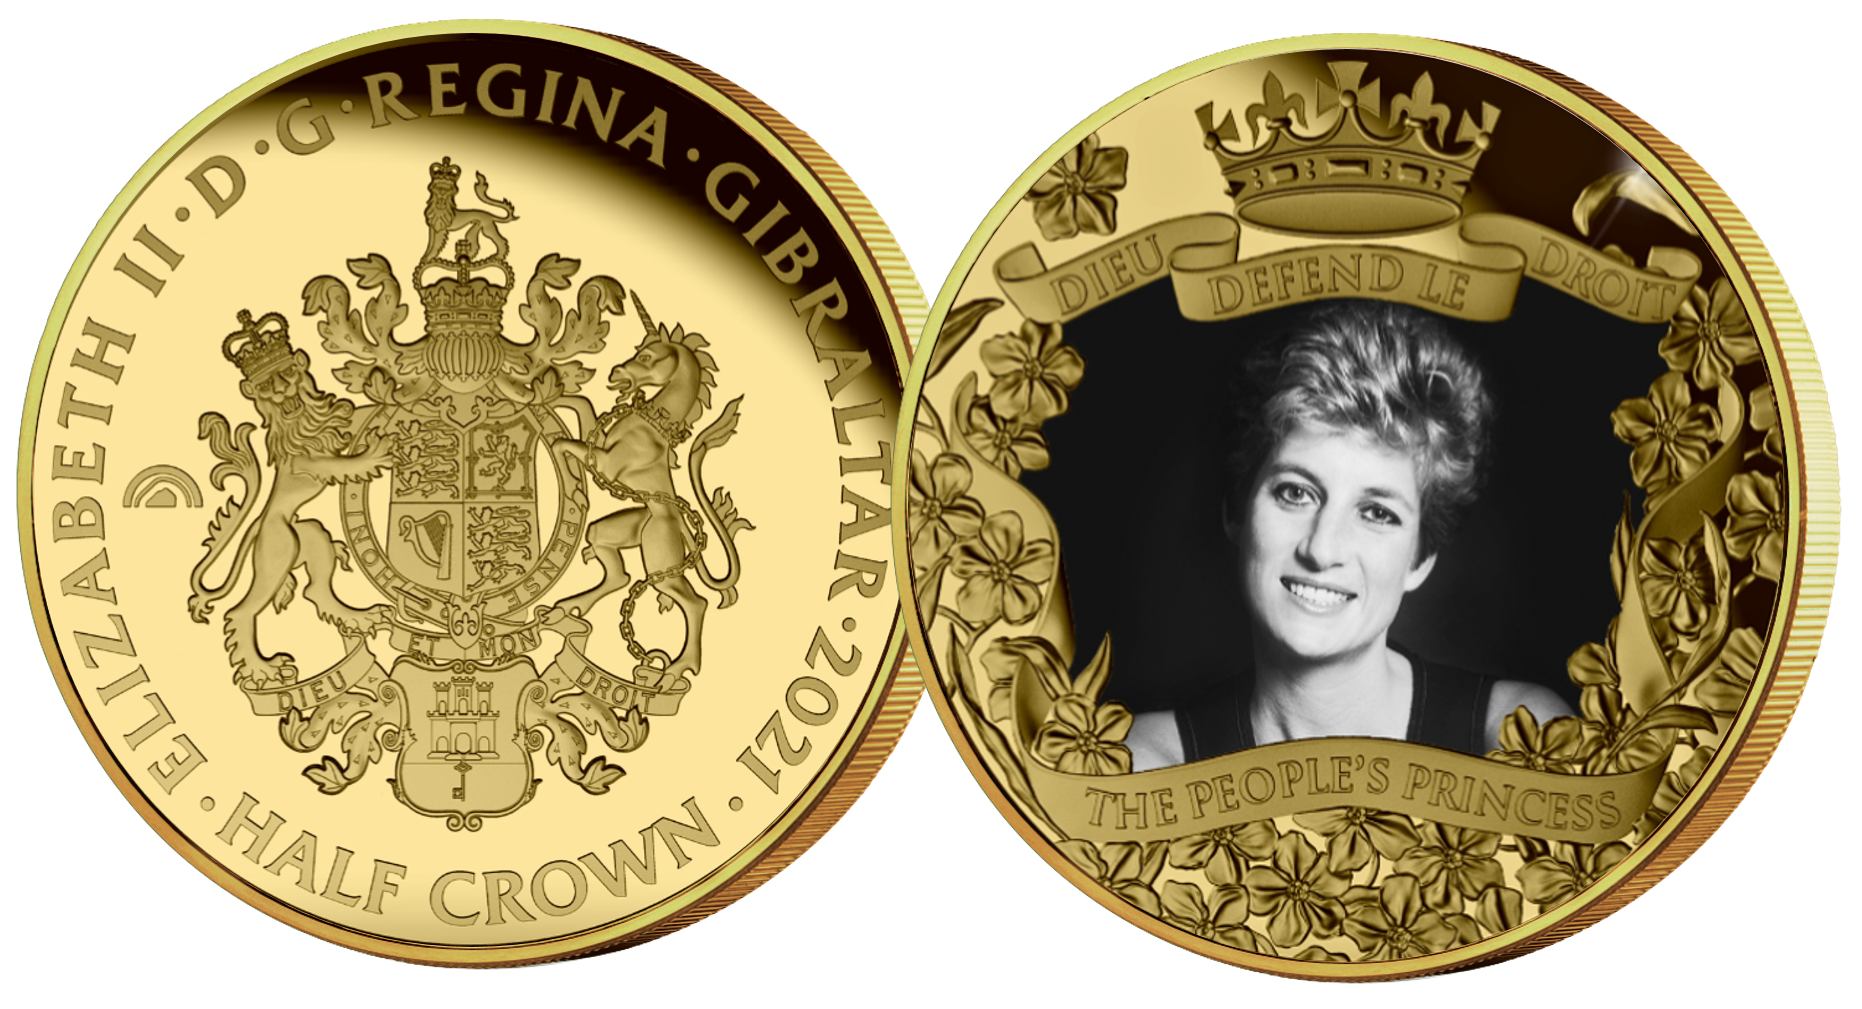 The coin features a beautiful and timeless photograph of Diana, Princess of Wales, and is elegantly framed by a shower of forget-me-nots – Diana's favourite flowers.